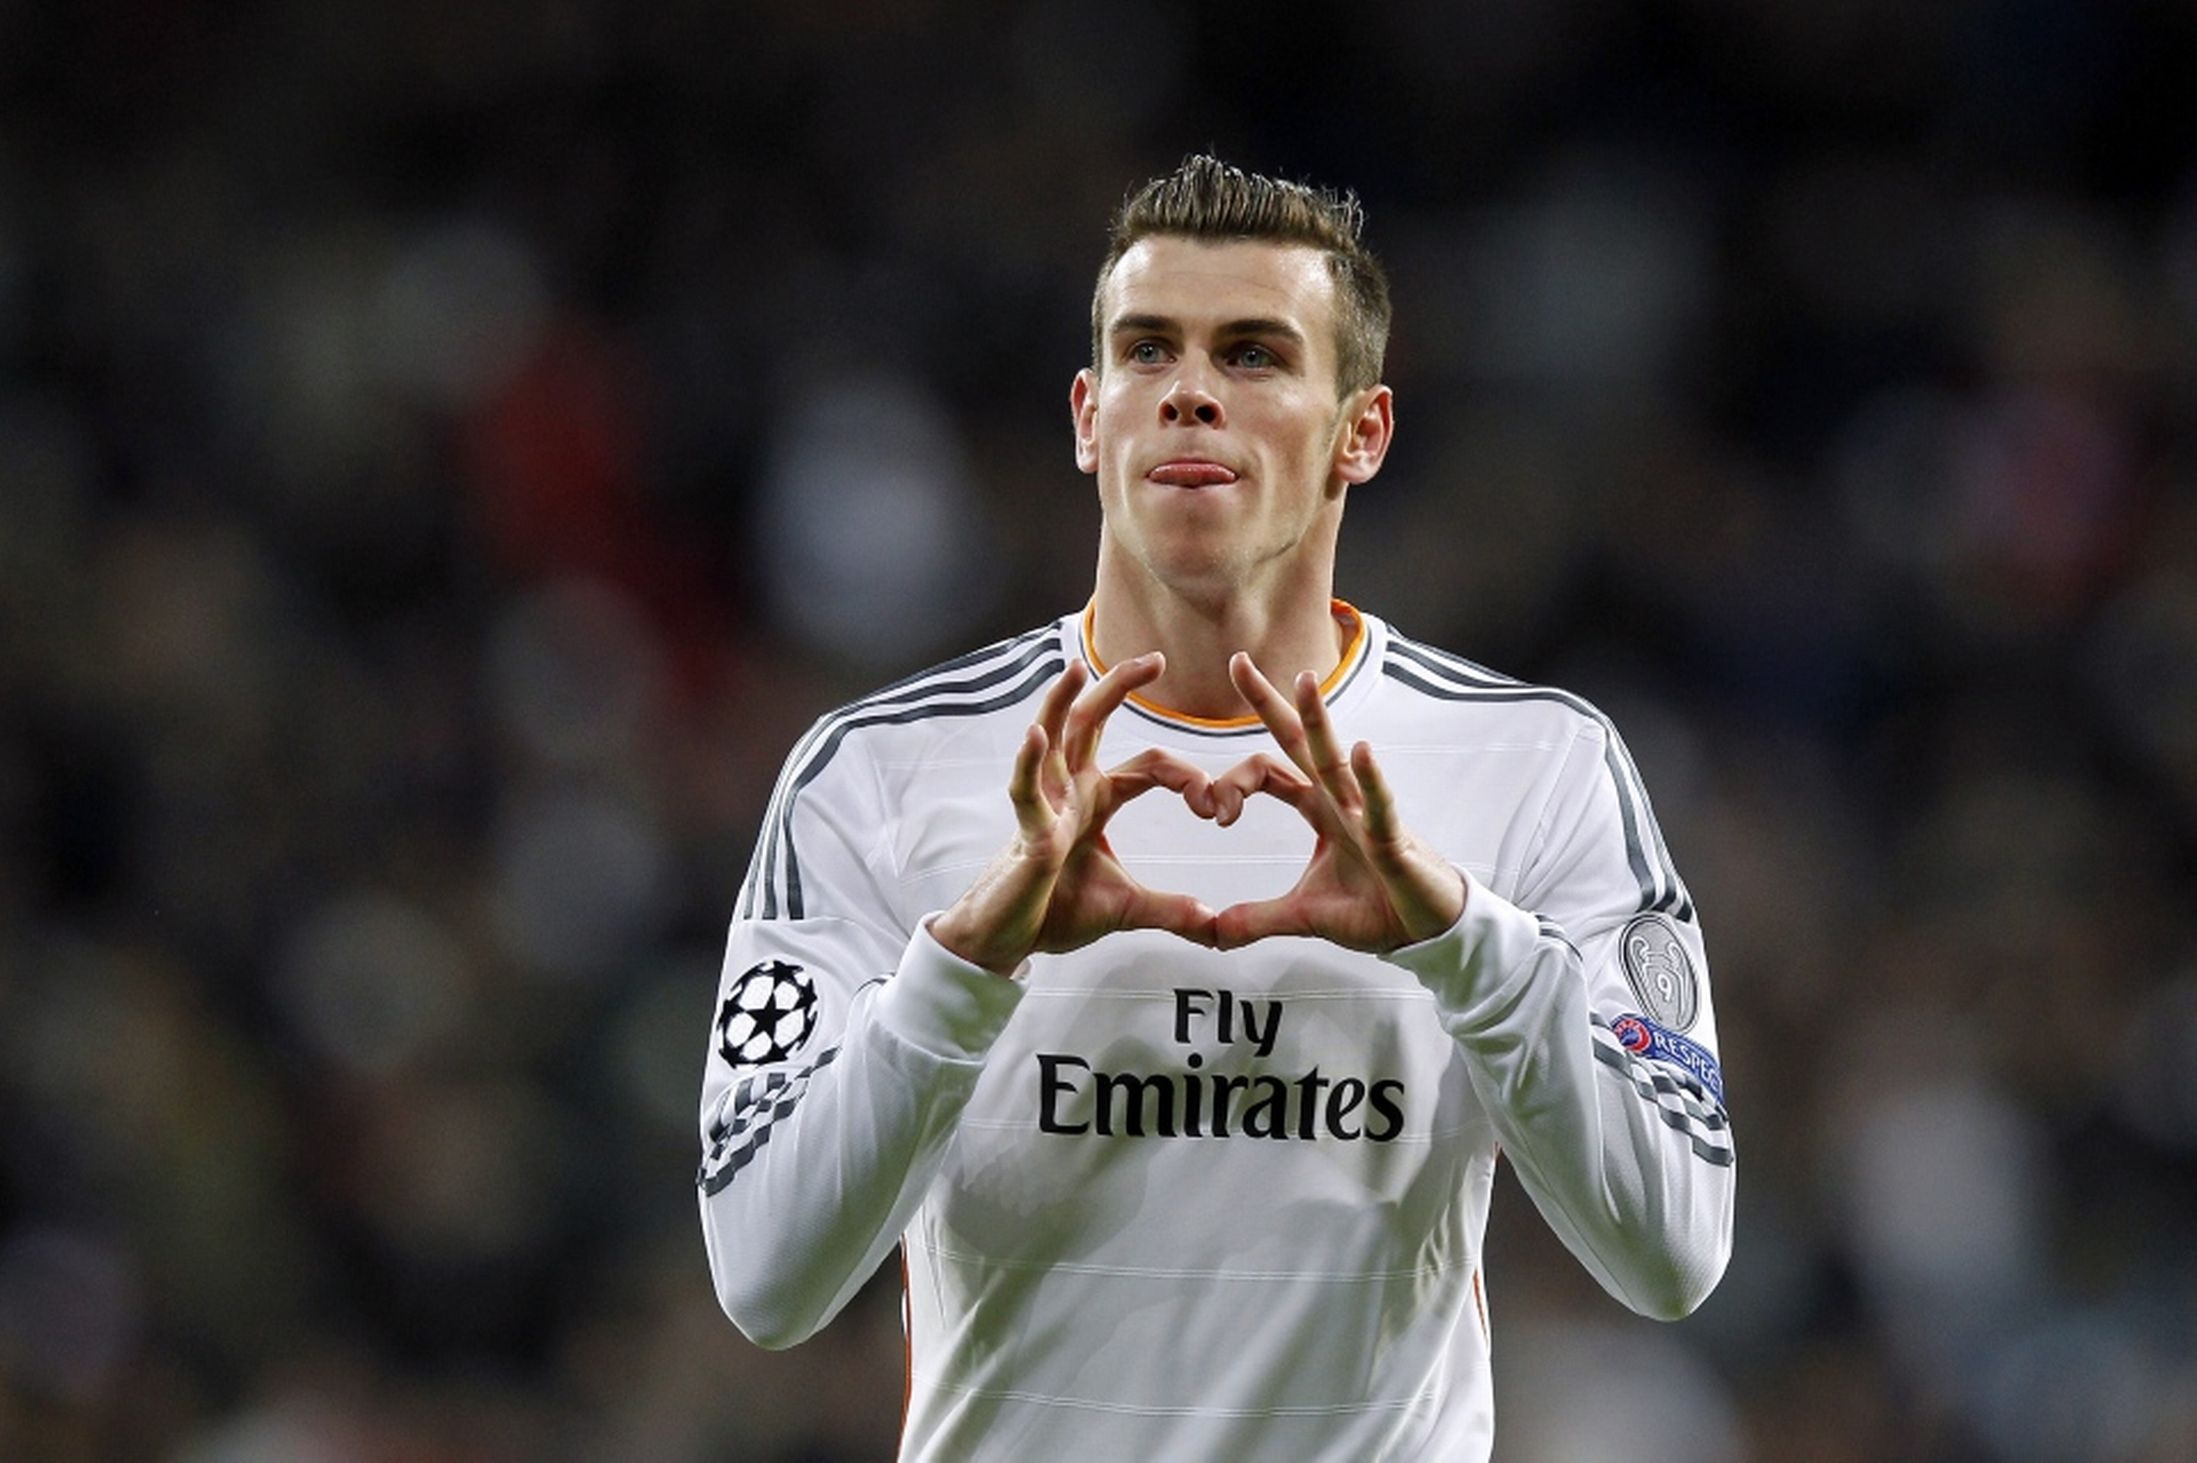 The Life of Gareth Bale From Cardiff to Real Madrid – Goal Profits